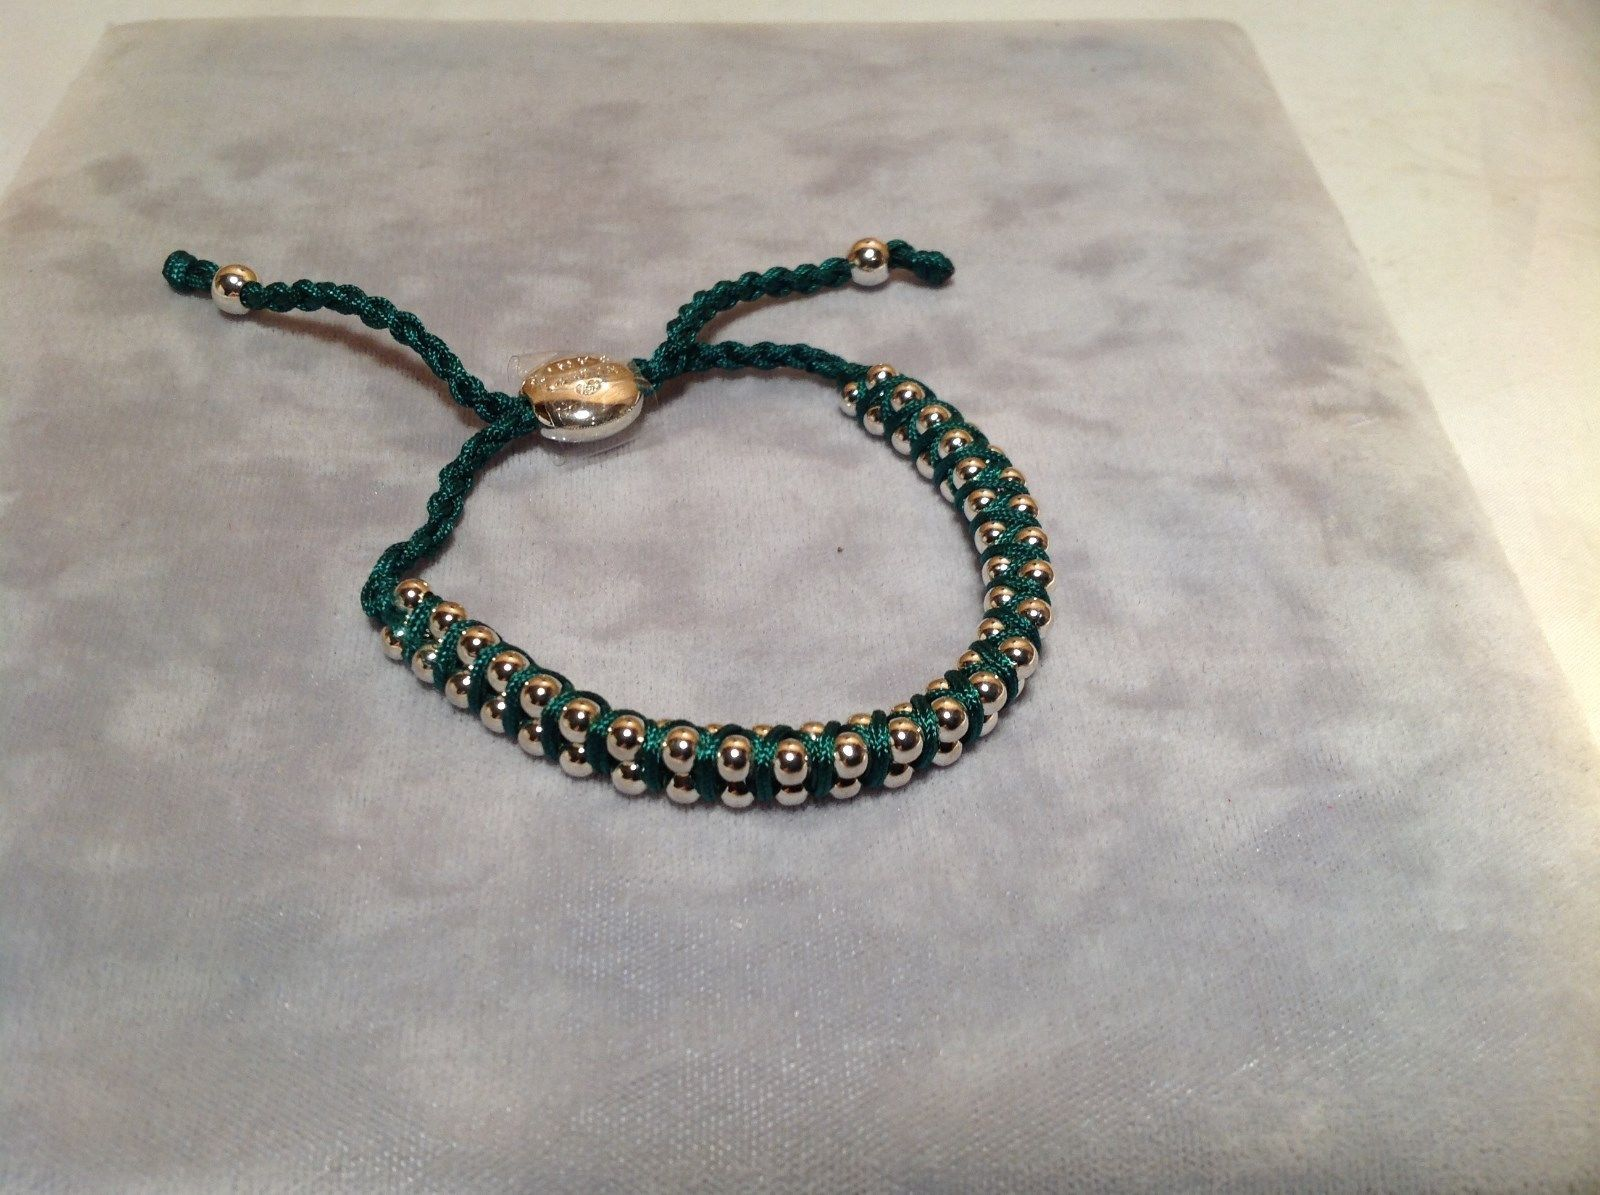 Dark Green Small Tied String Bracelet Sliding Bead for Adjustment